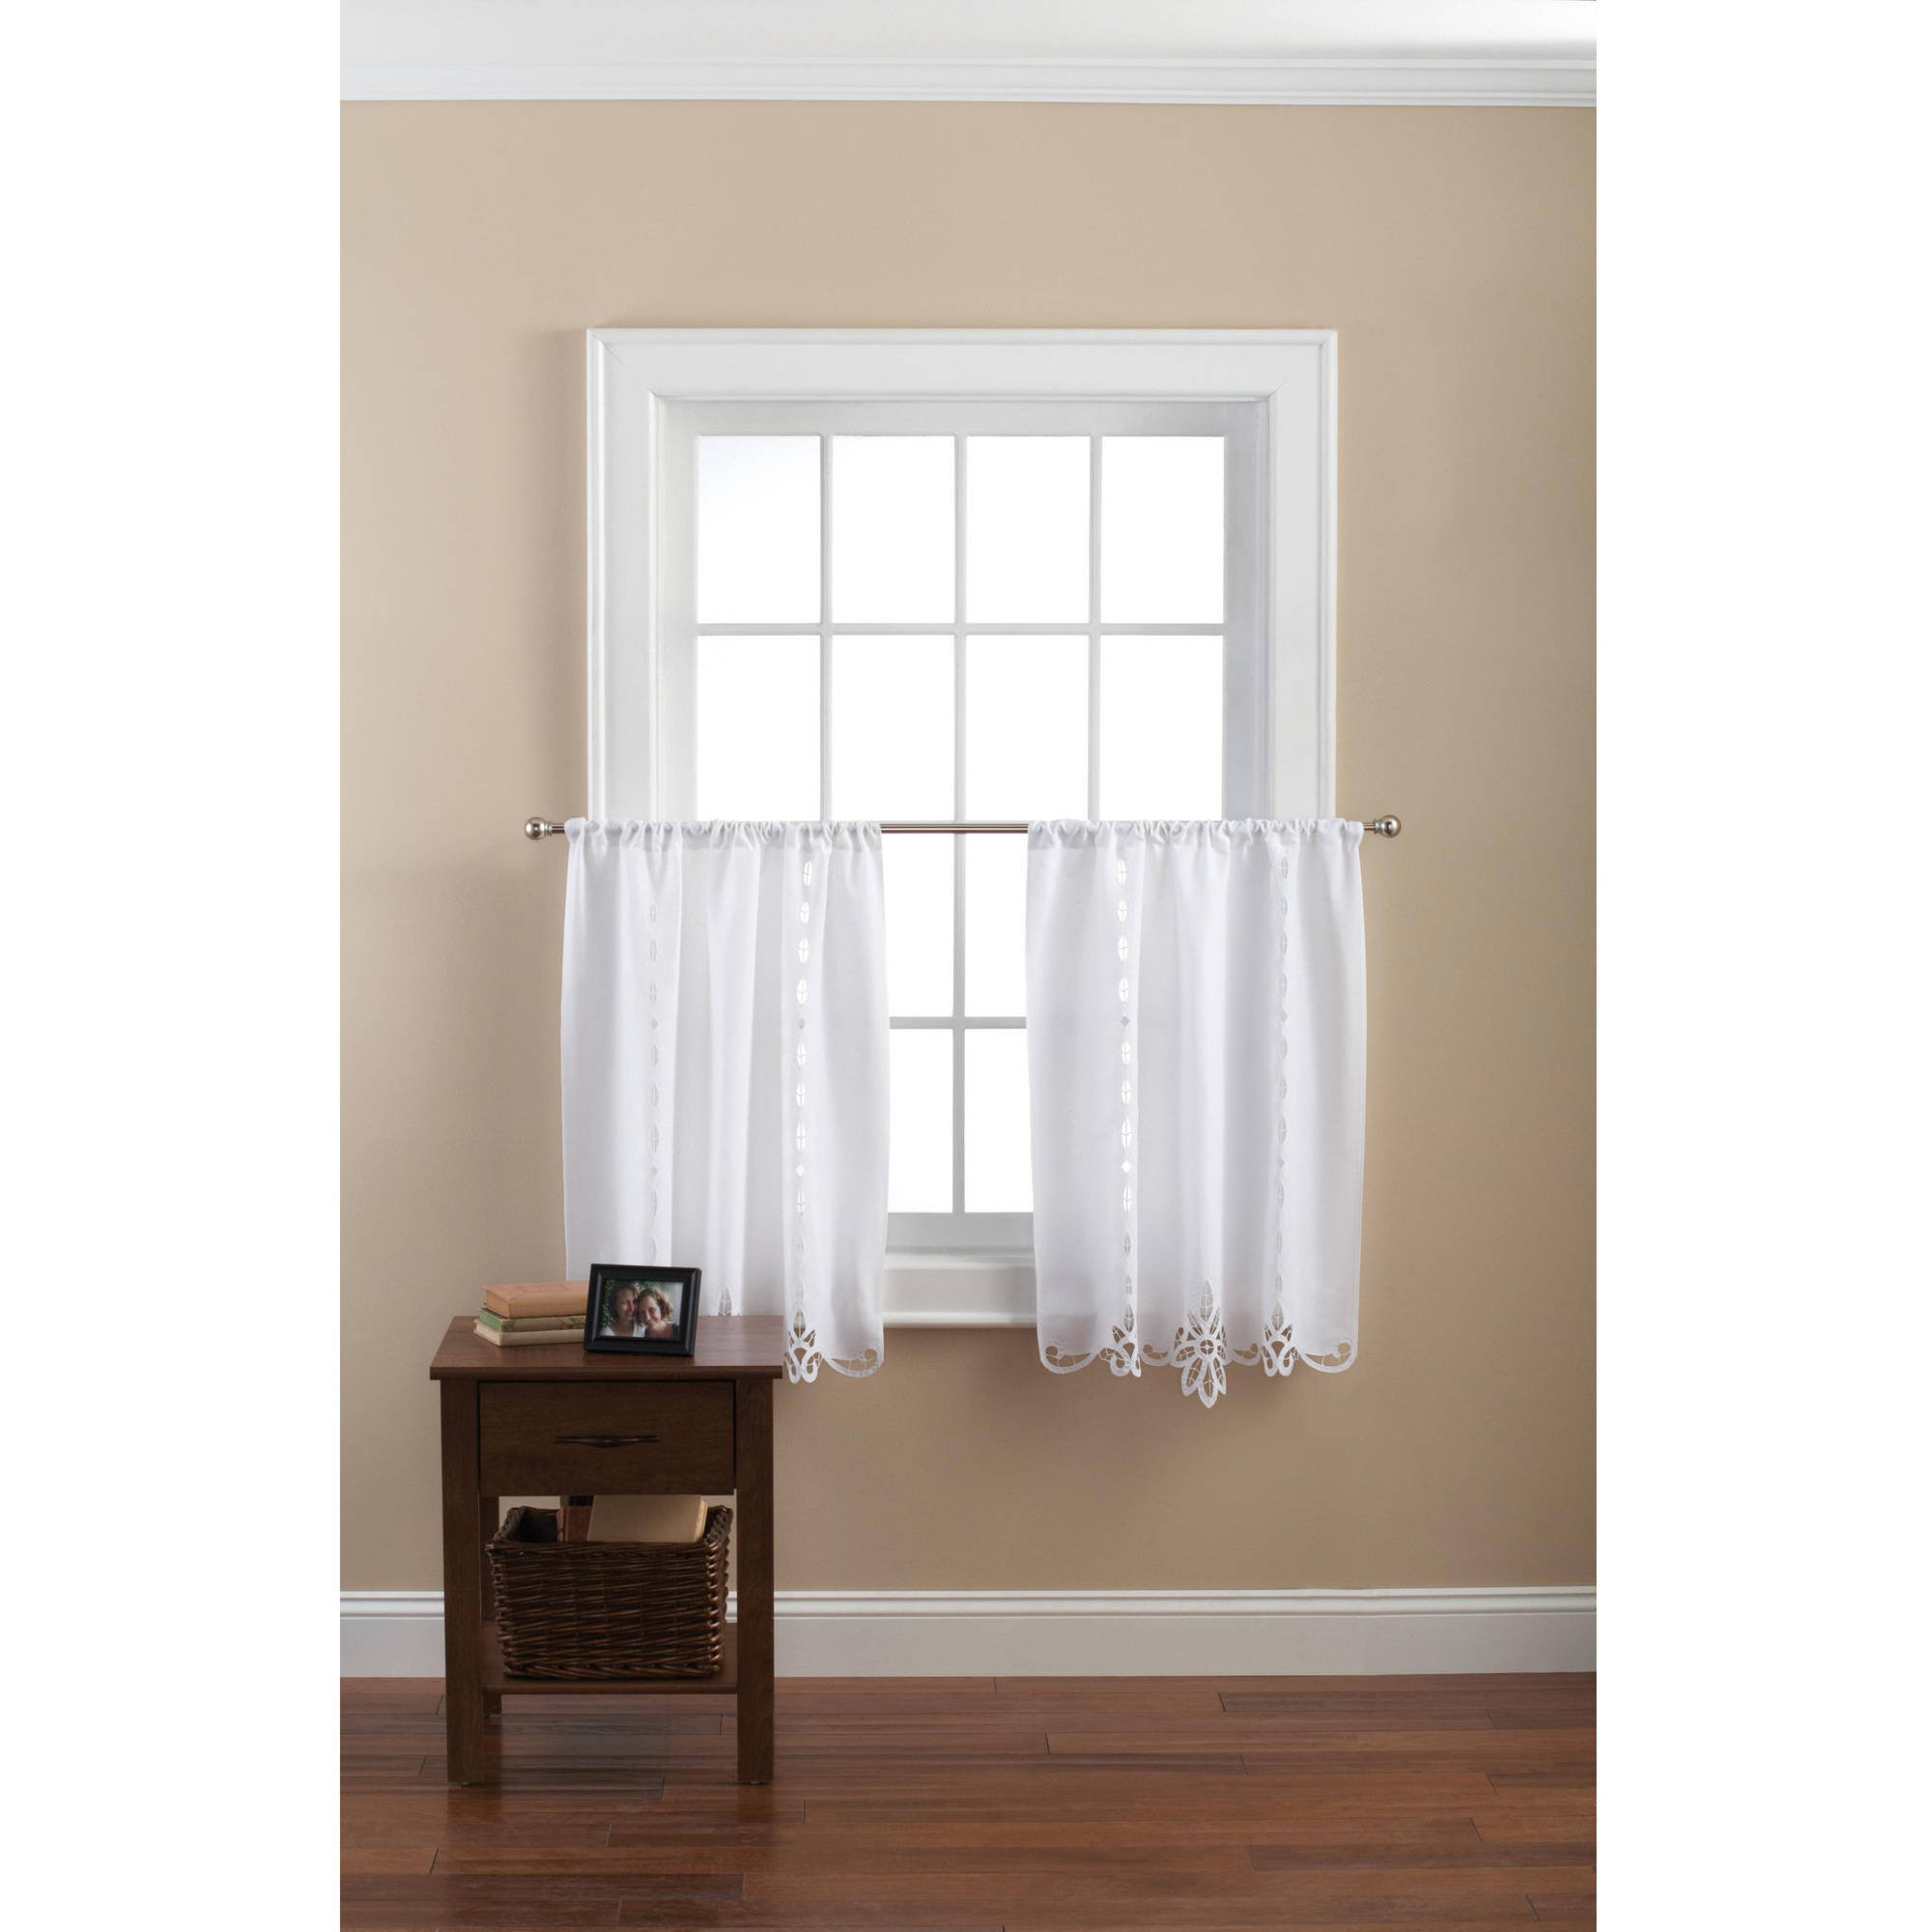 Mainstays Battenburg White Lace Kitchen Curtains, Set Of 2 – Walmart Regarding Classic Black And White Curtain Tiers (View 17 of 20)